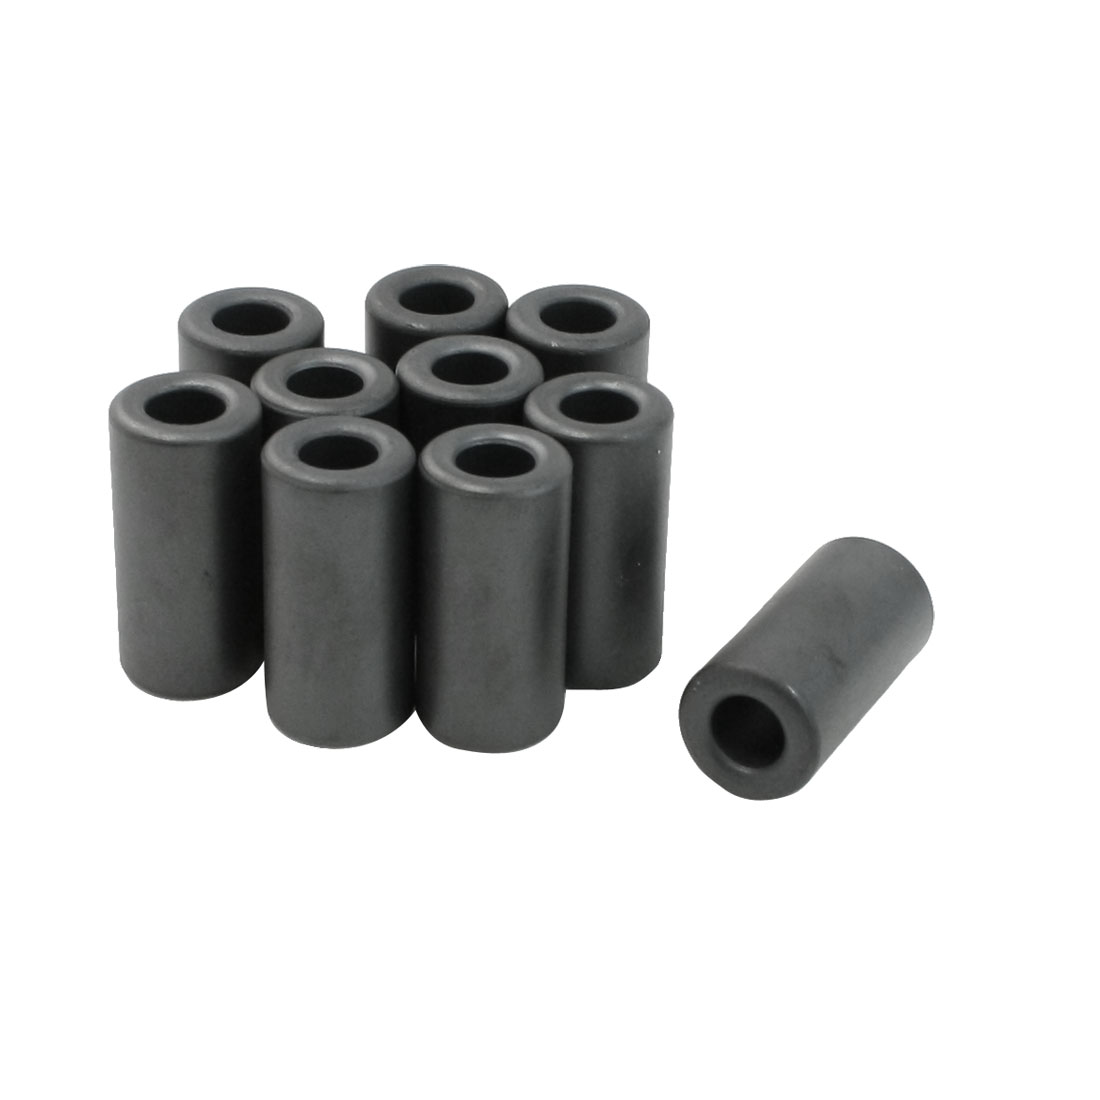 10 Pcs 14x7x28.5mm Toroid Ferrite Cores Dark Gray for Power Transformers